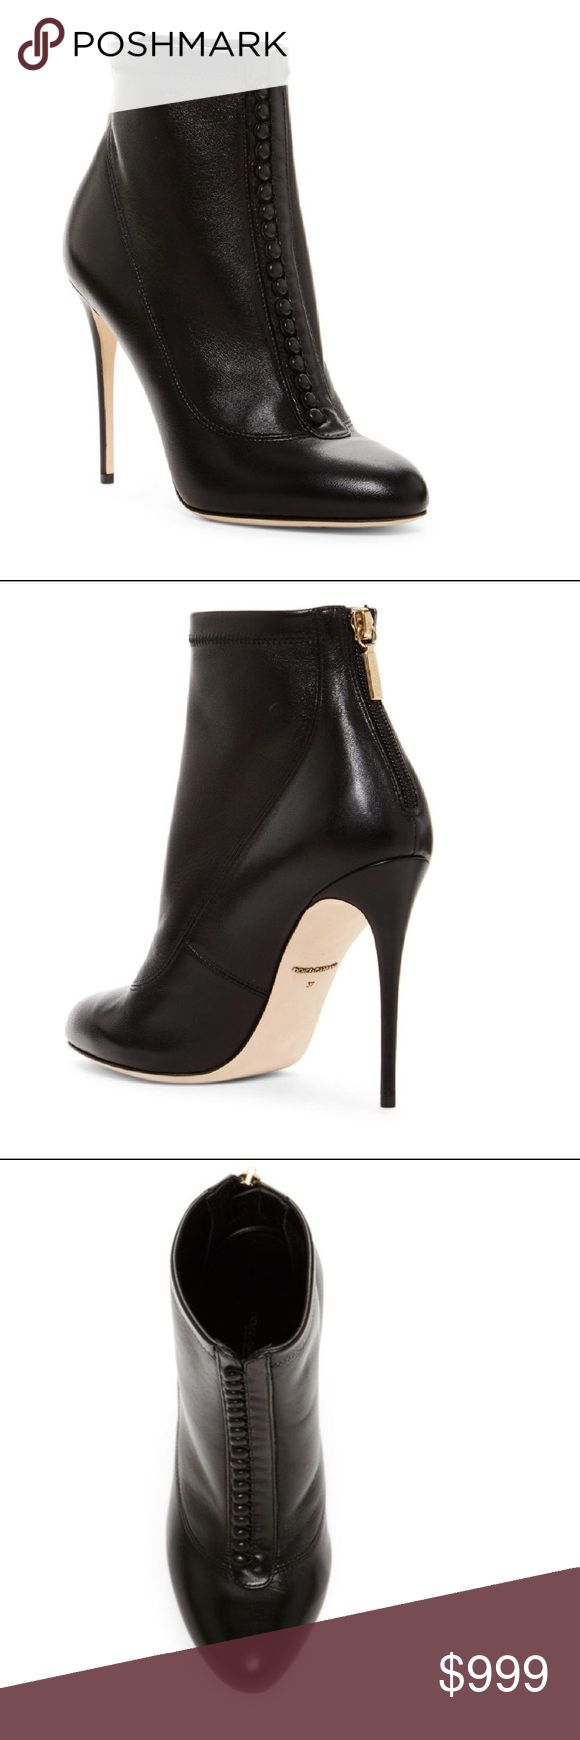 """Brand New Dolce & Gabbana - Button Front Bootie Sizing: True to size. Reference size chart for European conversion.    - Round toe  - Button-up vamp  - Back zip closure  - Lightly padded insole  - Covered stiletto heel  - Approx. 5.75"""" shaft height, 10"""" opening circumference  - Approx. 4"""" heel  - Made in Italy  - Materials: Leather upper, lining, and sole Dolce & Gabbana Shoes Ankle Boots & Booties"""